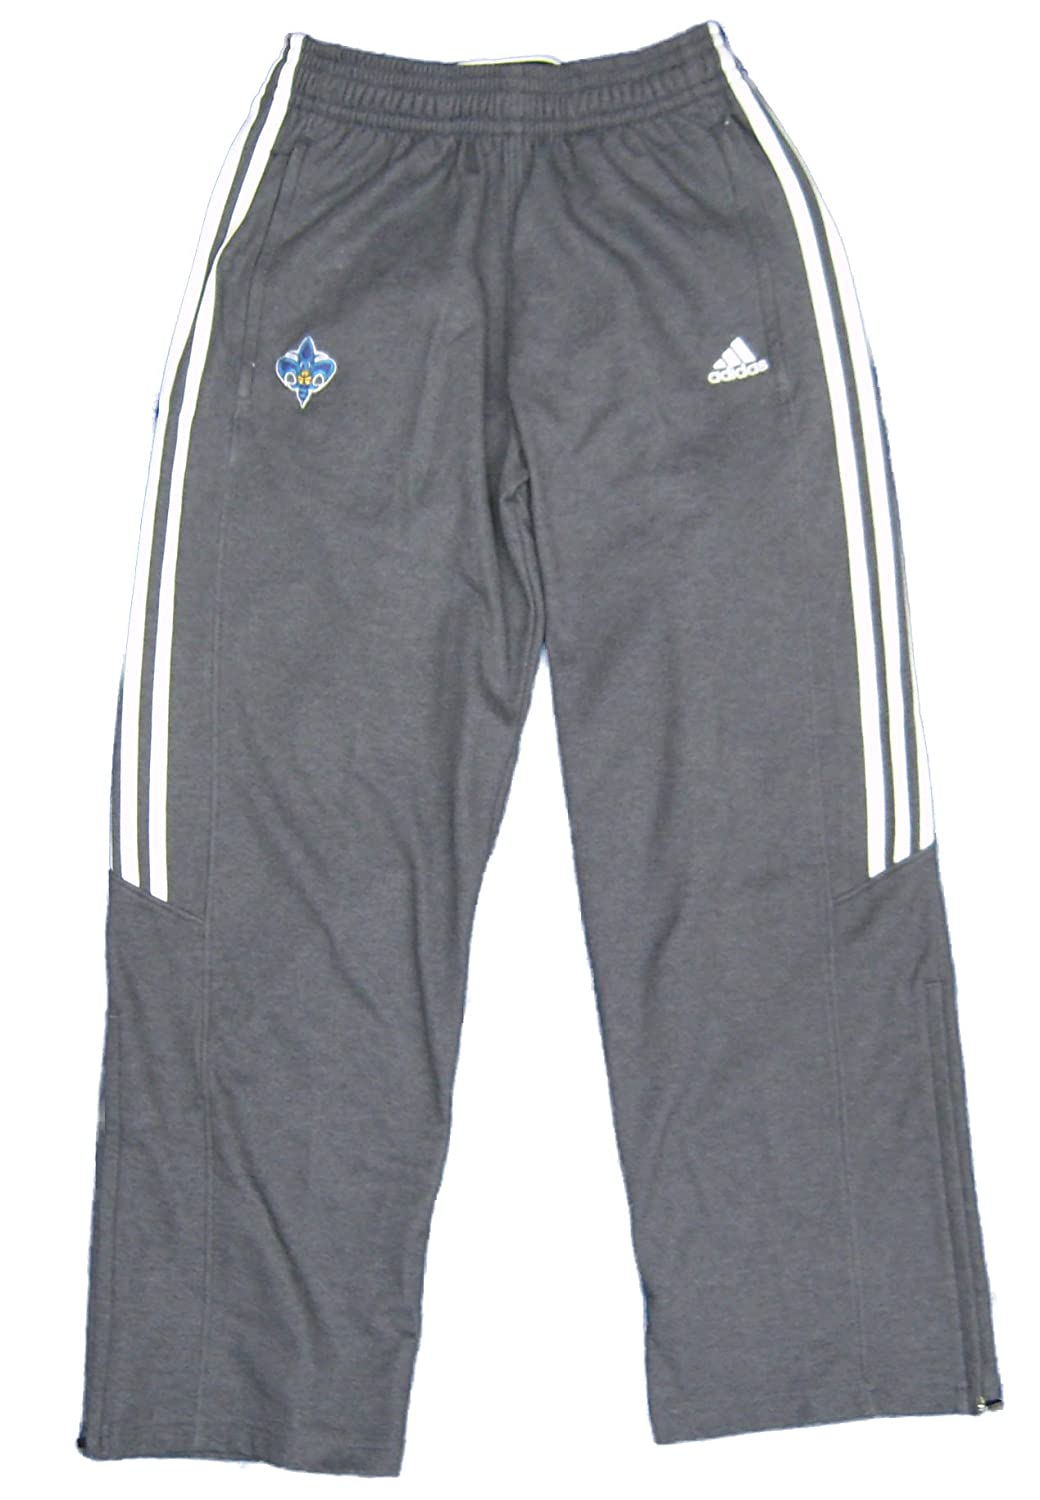 New Orleans Hornets Team Issued adidas Sweat Pants Size XLT - Deep Esspa